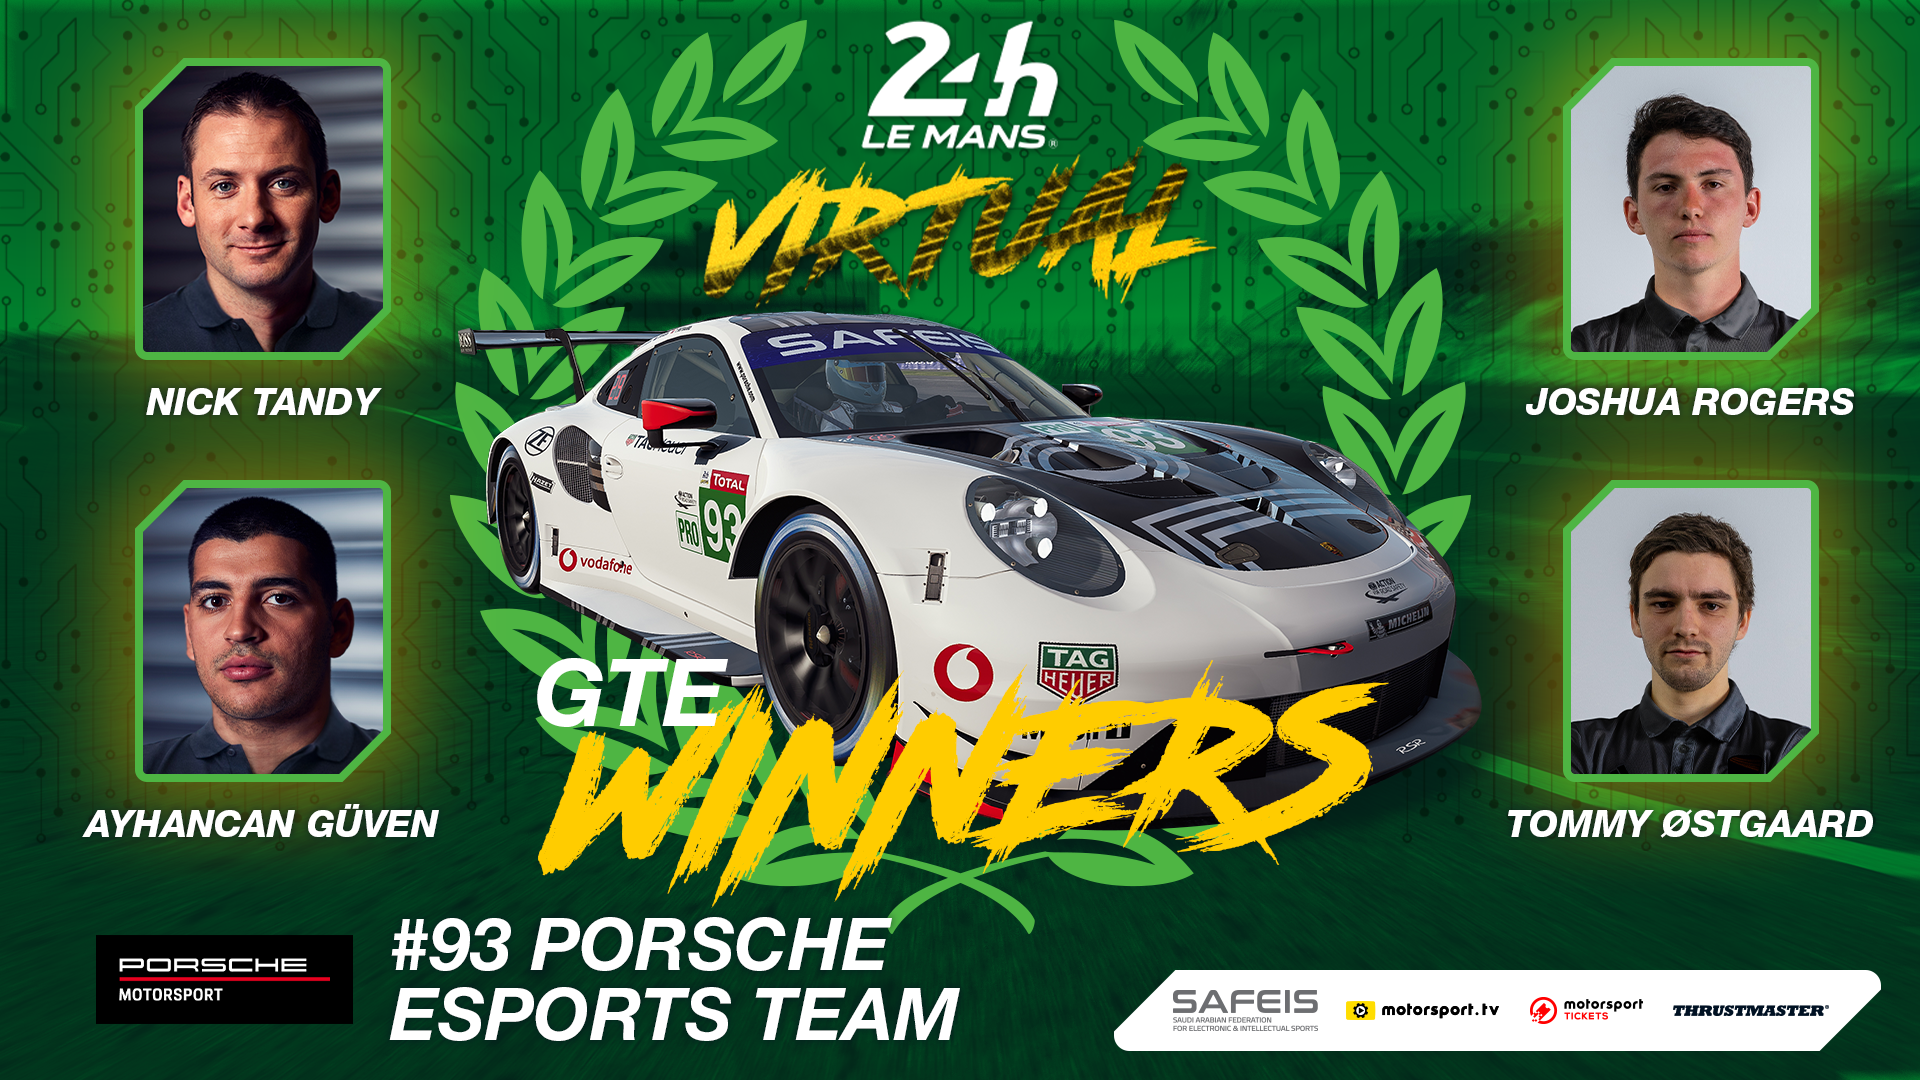 Porsche Dominates Gte Category At The 24 Hours Of Le Mans Virtual Fi